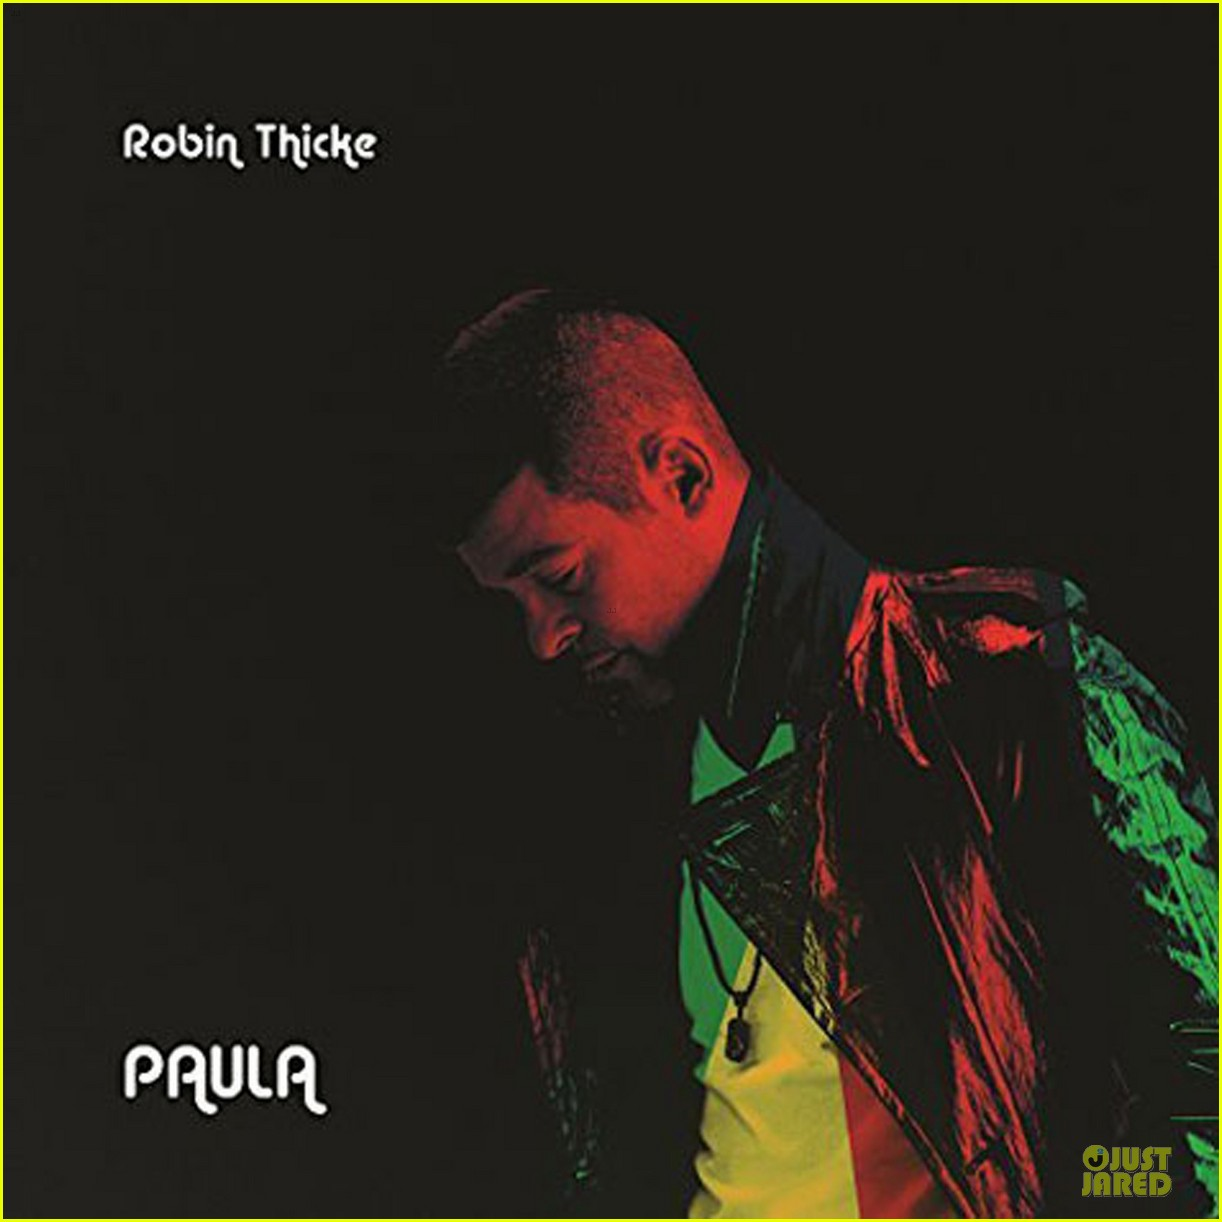 robin thicke reveals paula tracklisting colorful cover art 043139094